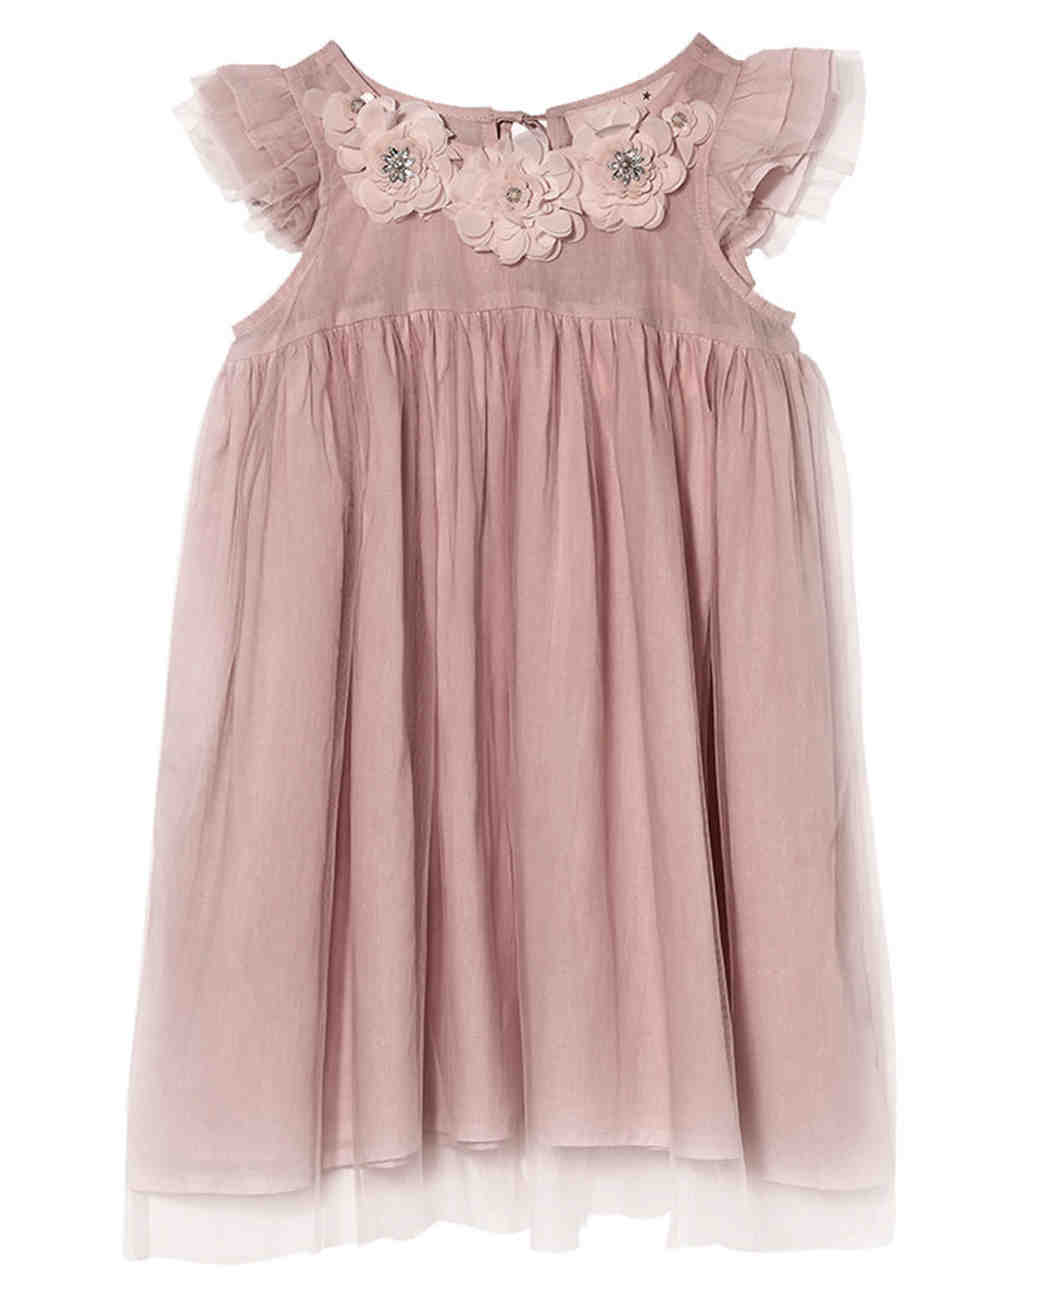 Fuchsia Flower Girls Floral Jacquard Dress Pageant Christmas Wedding Party 761